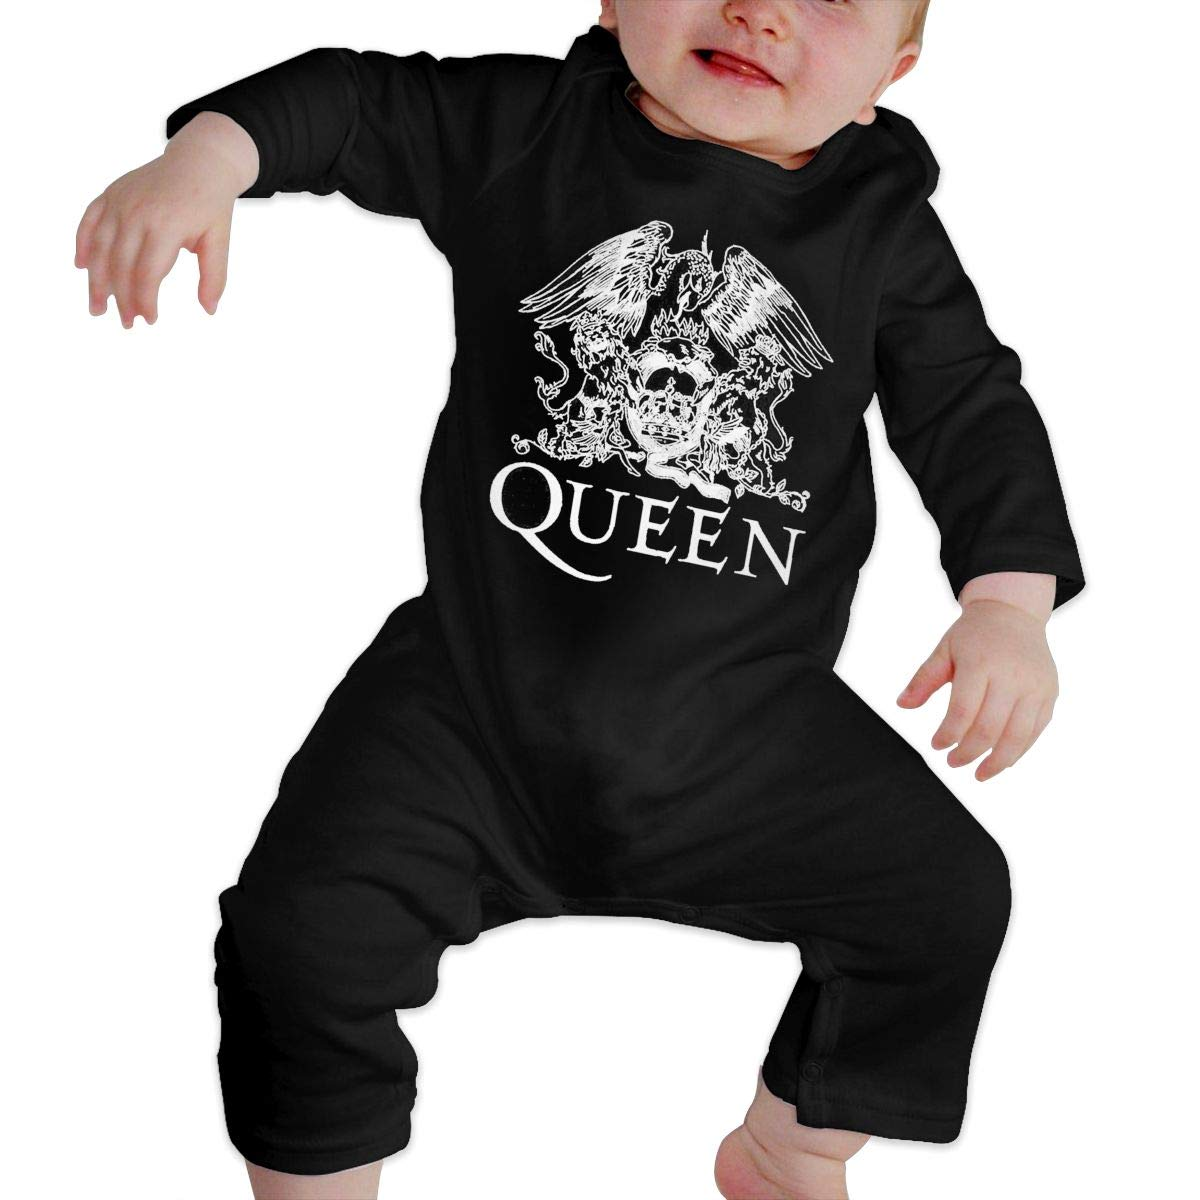 SOFIEYA Queen-Band Kids Baby Unisex Cotton Cute Long Sleeve Hooded Romper Jumpsuit Baby Crawler Clothes Black